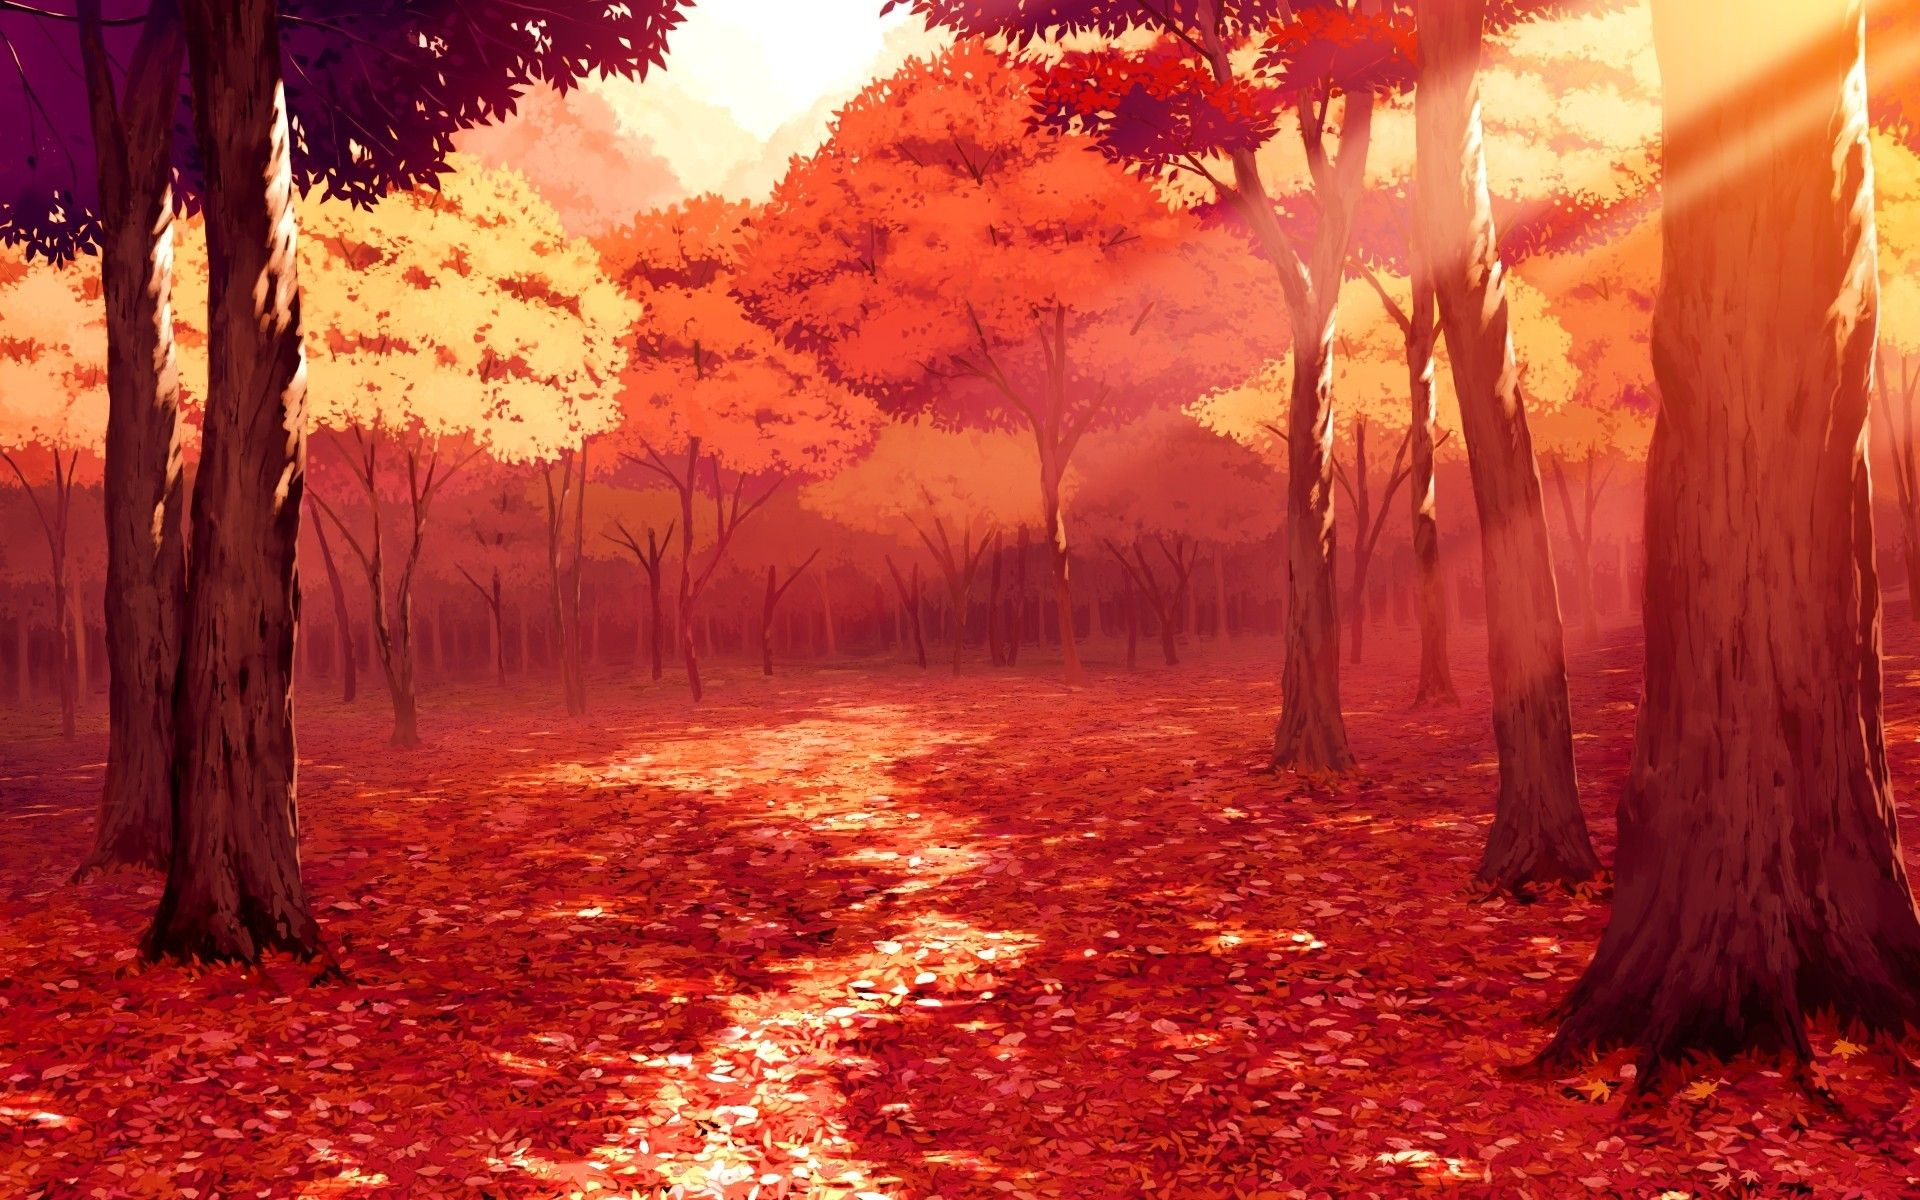 Forest Artwork Anime Fall Sunlight Drawing Leaves Red Wallpaper Anime Scenery Scenery Wallpaper Autumn Scenery